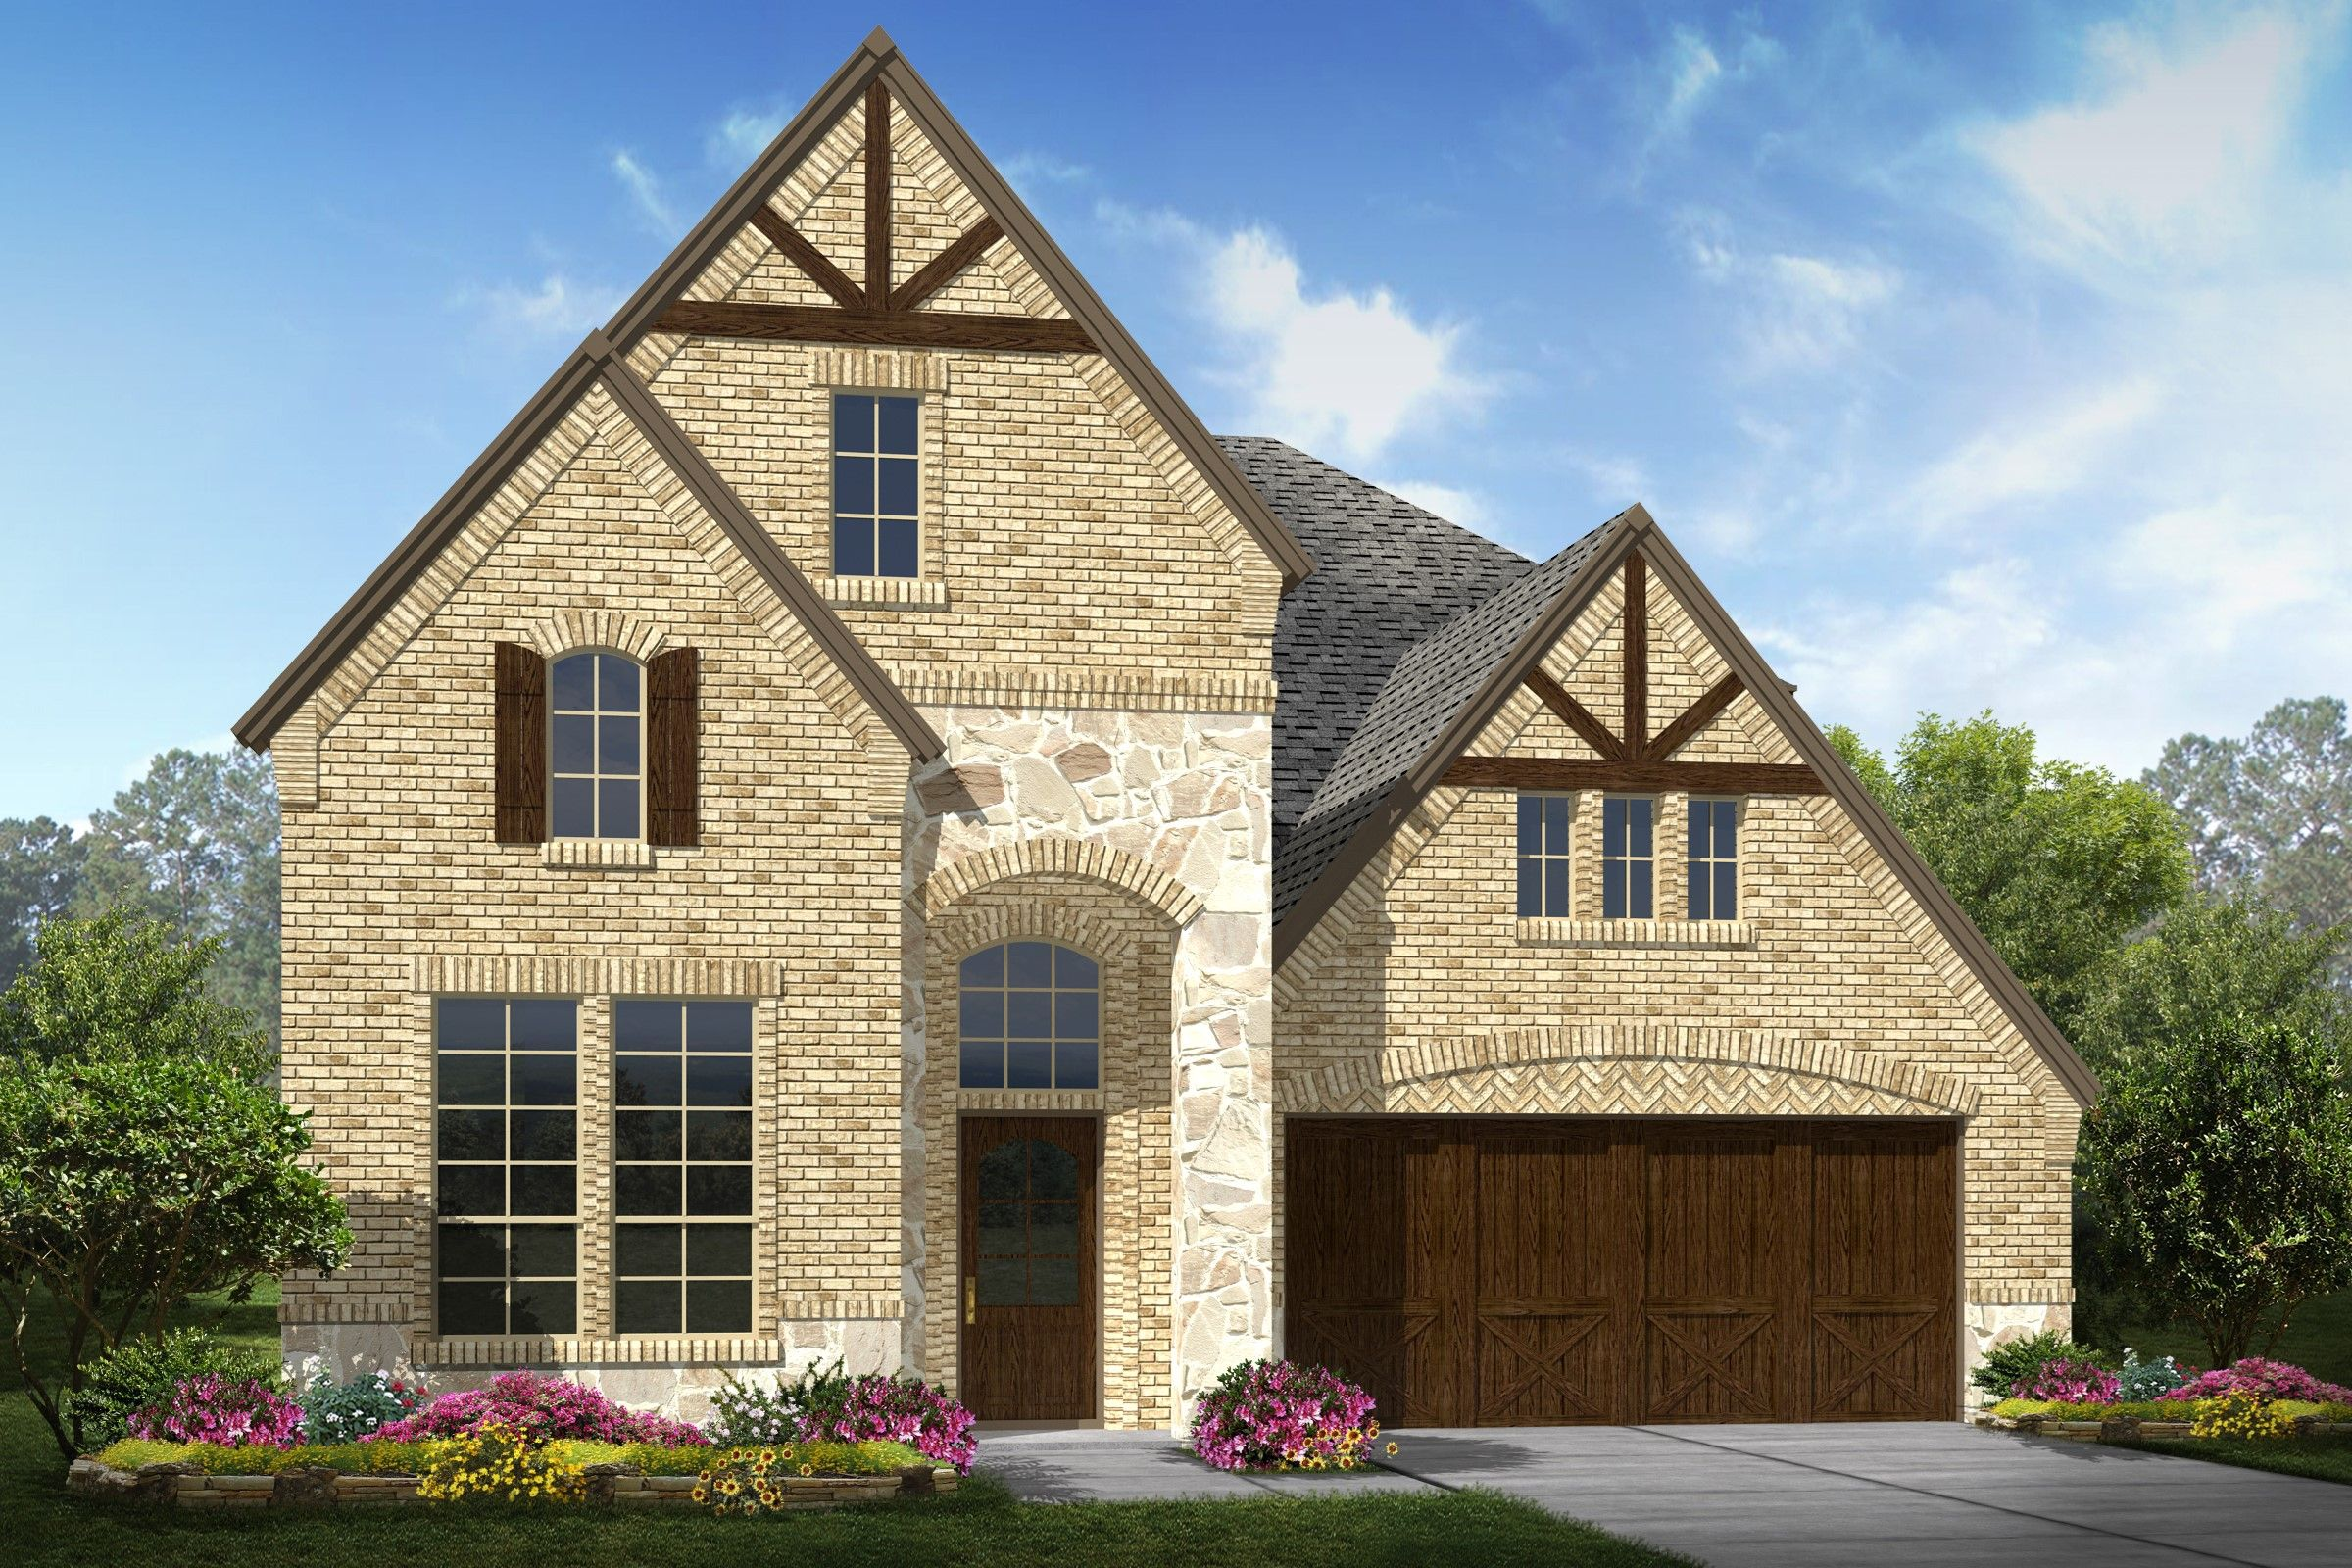 Single Family for Sale at Glade Parks - Langston 2608 San Jacinto Drive Euless, Texas 76039 United States